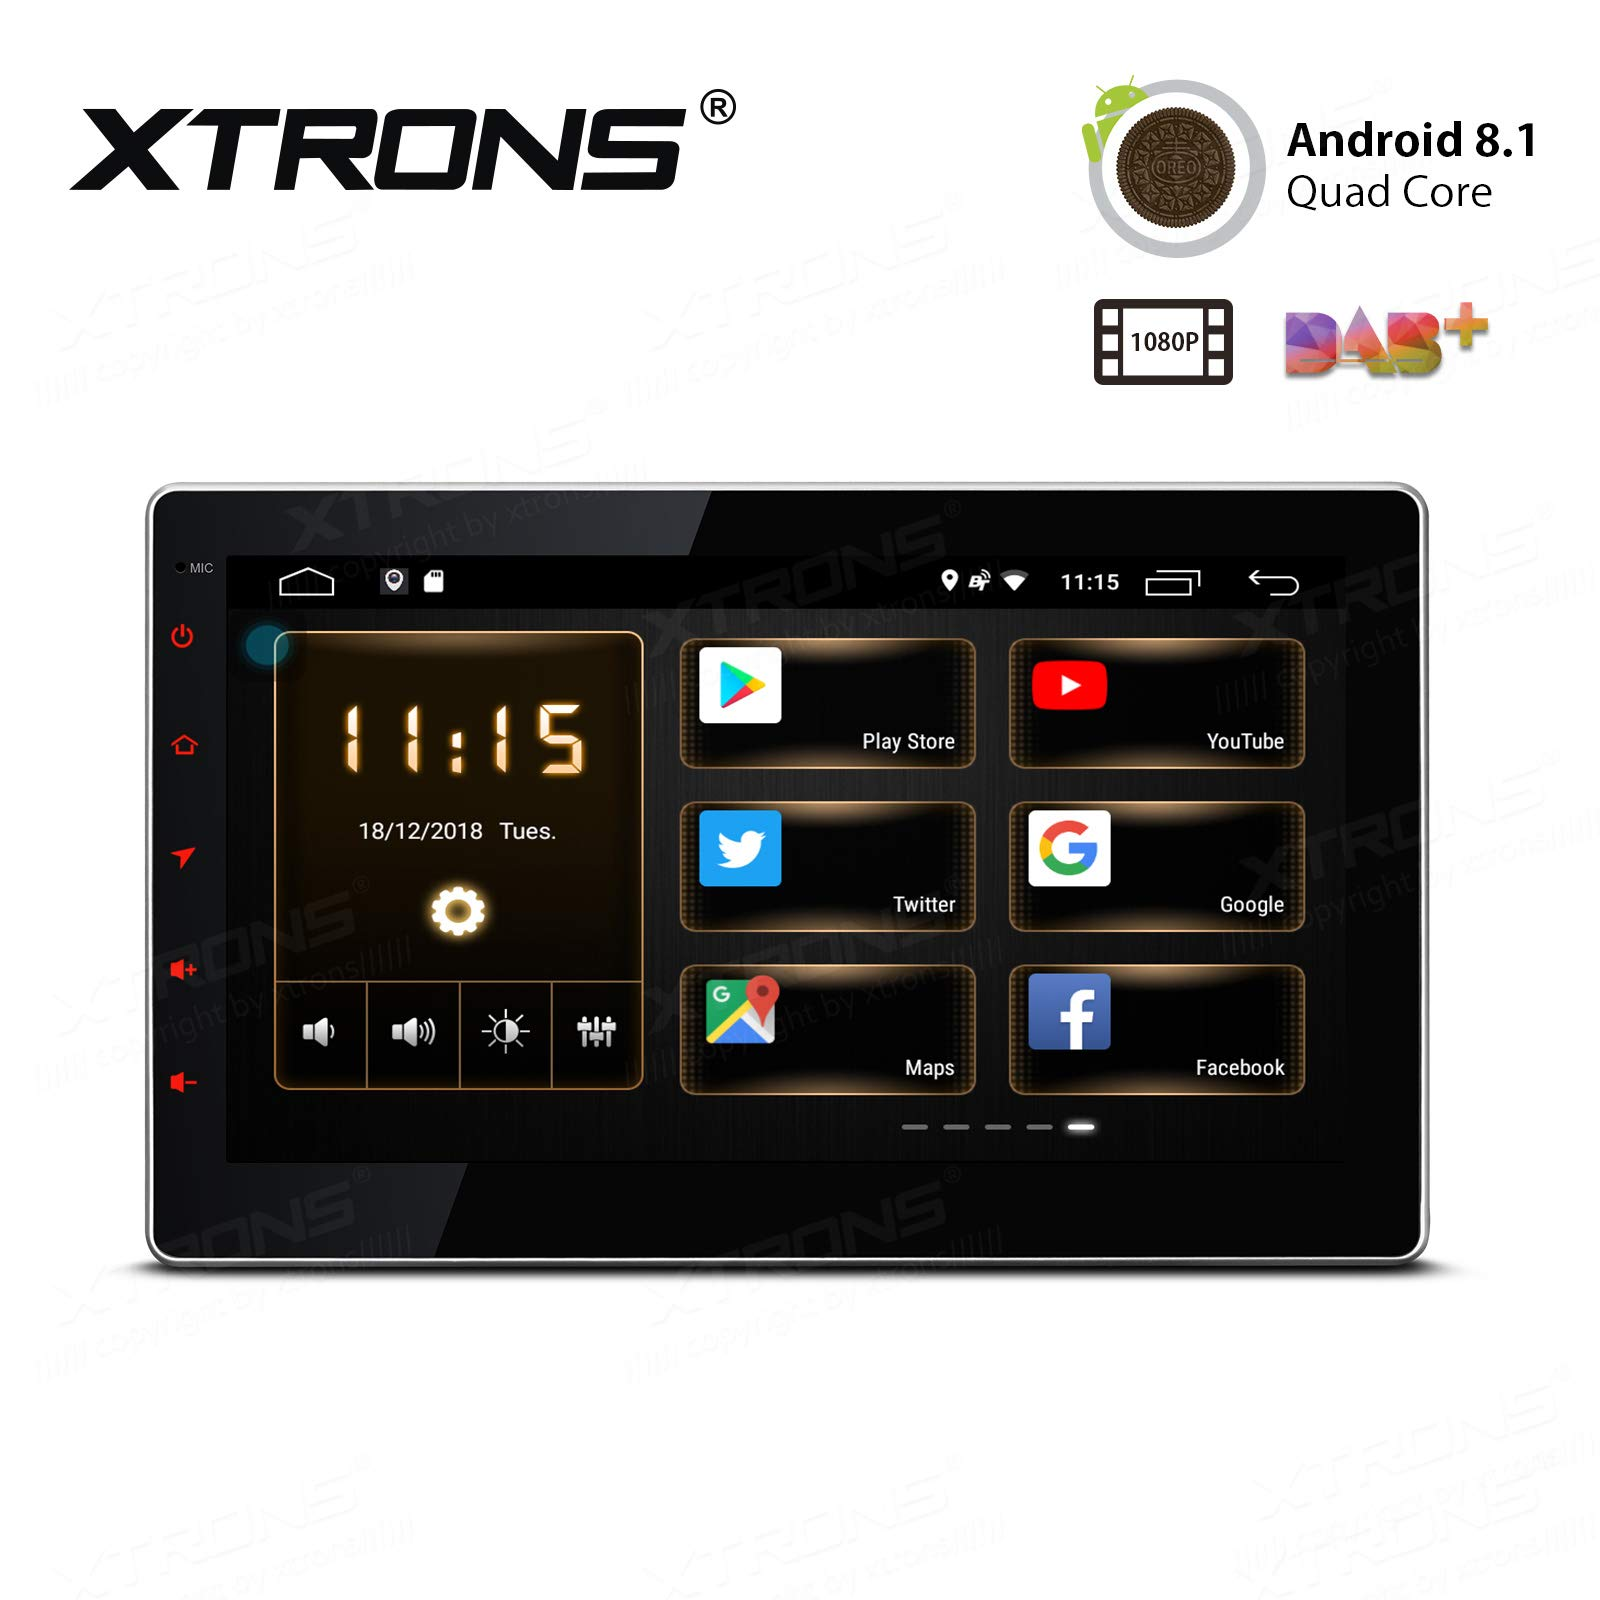 XTRONS 10.1 inch Touch Display Android 8.1 Quad-Core Car Stereo Radio Navigator GPS with USB Port Supports DVR 4G 3G OBD Backup Camera